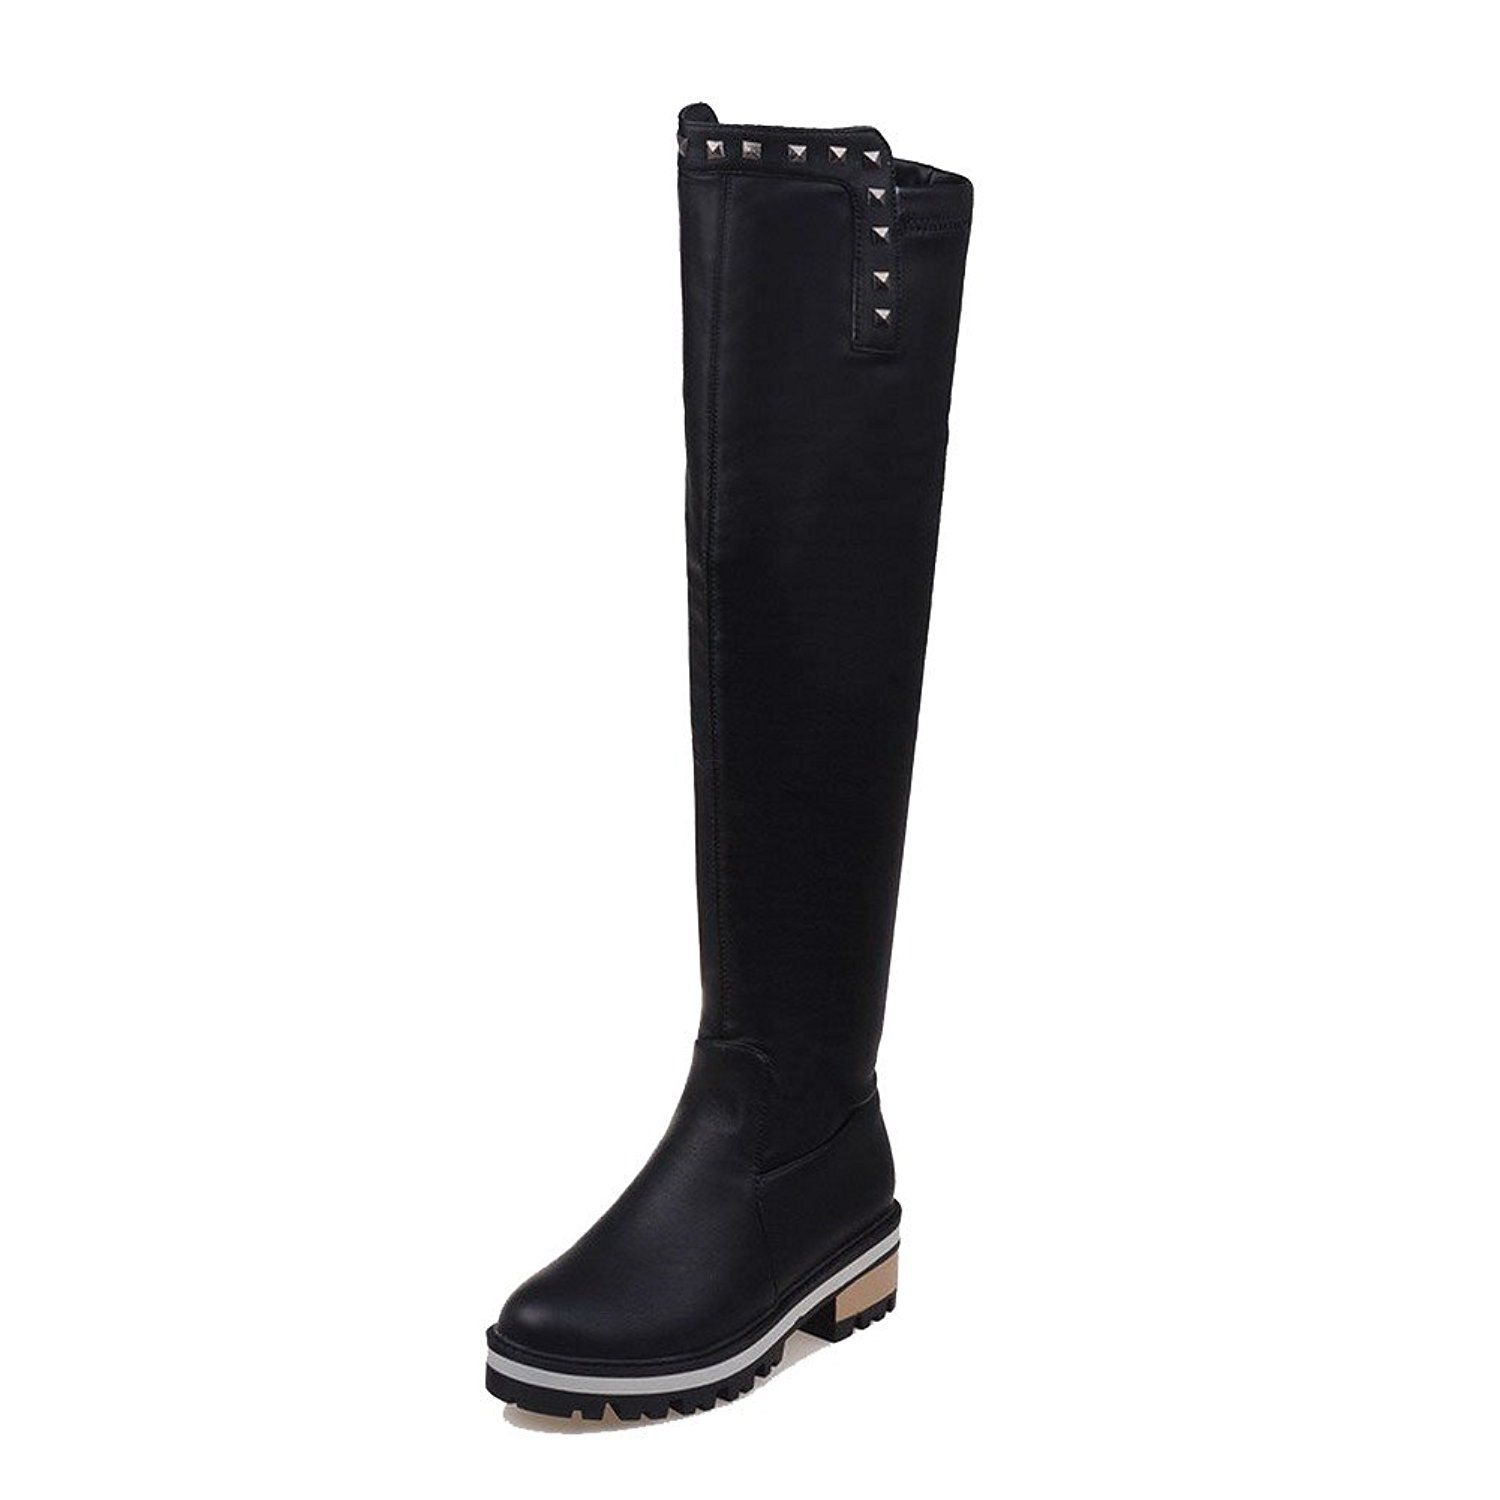 Women's Pull On Kitten Heels PU Solid Ankle High Boots